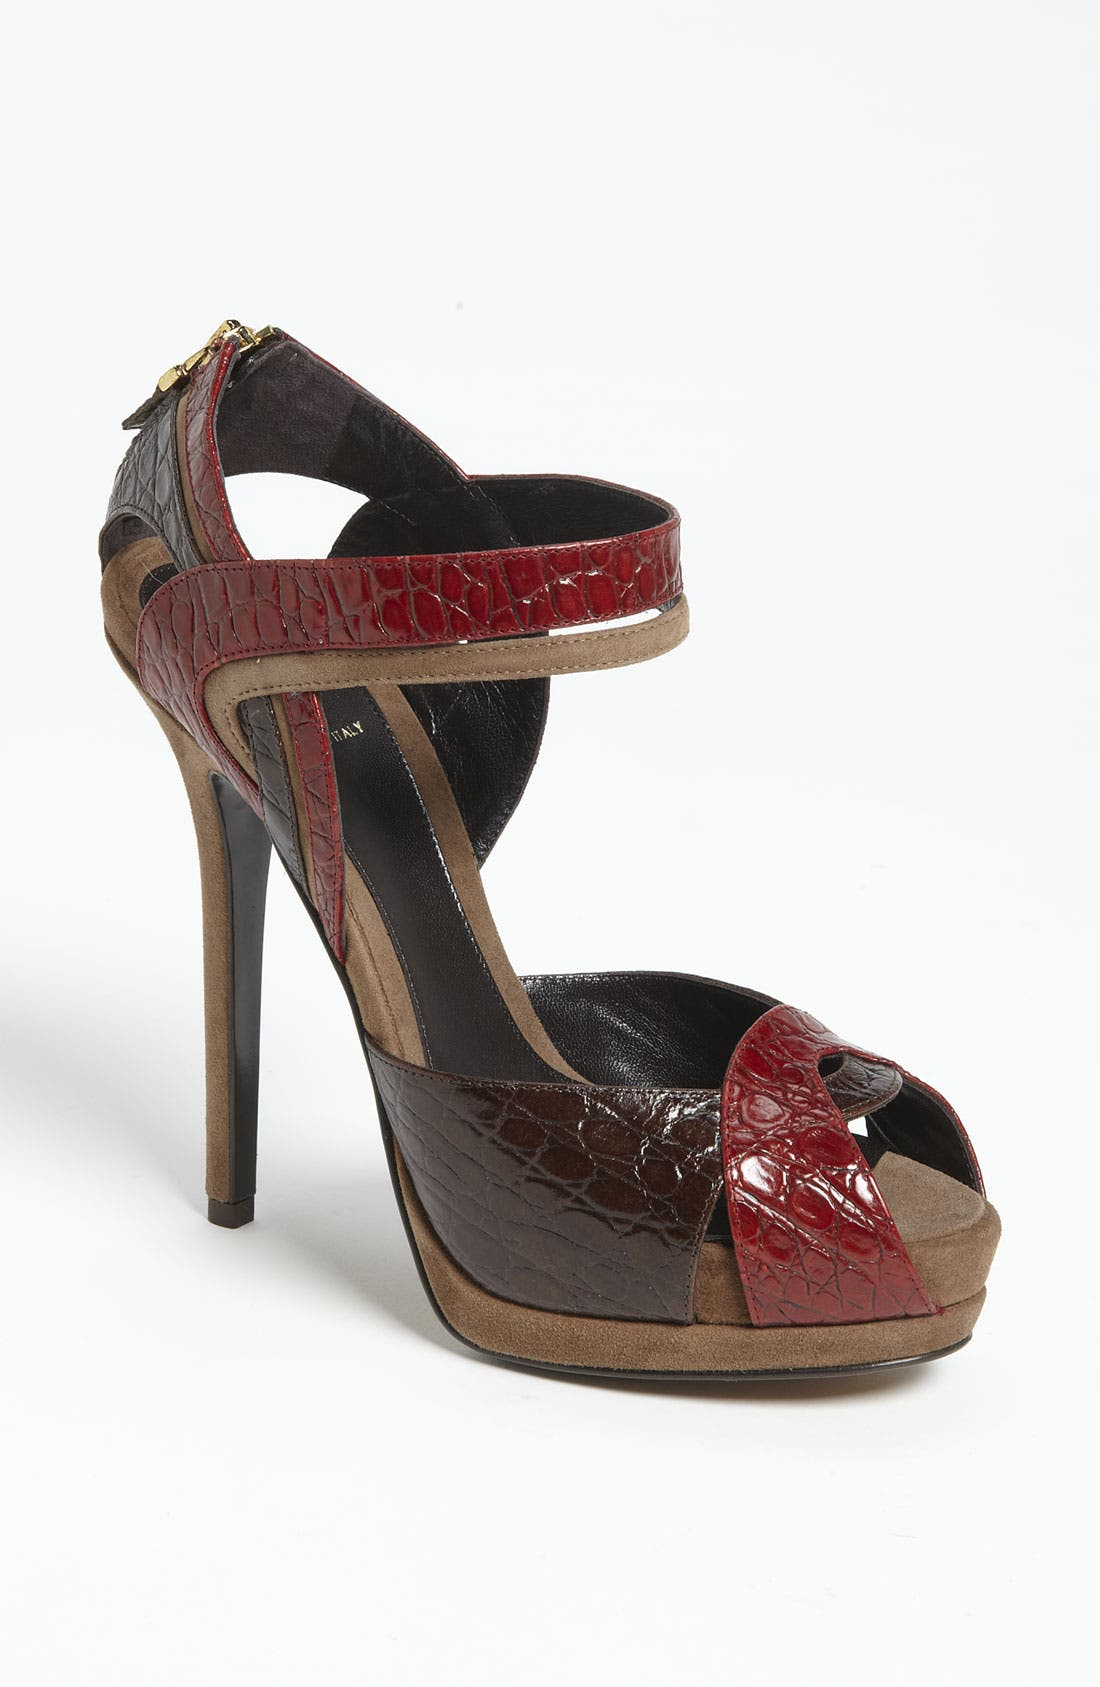 Main Image - Fendi 'Let Me In' Ankle Strap Sandal